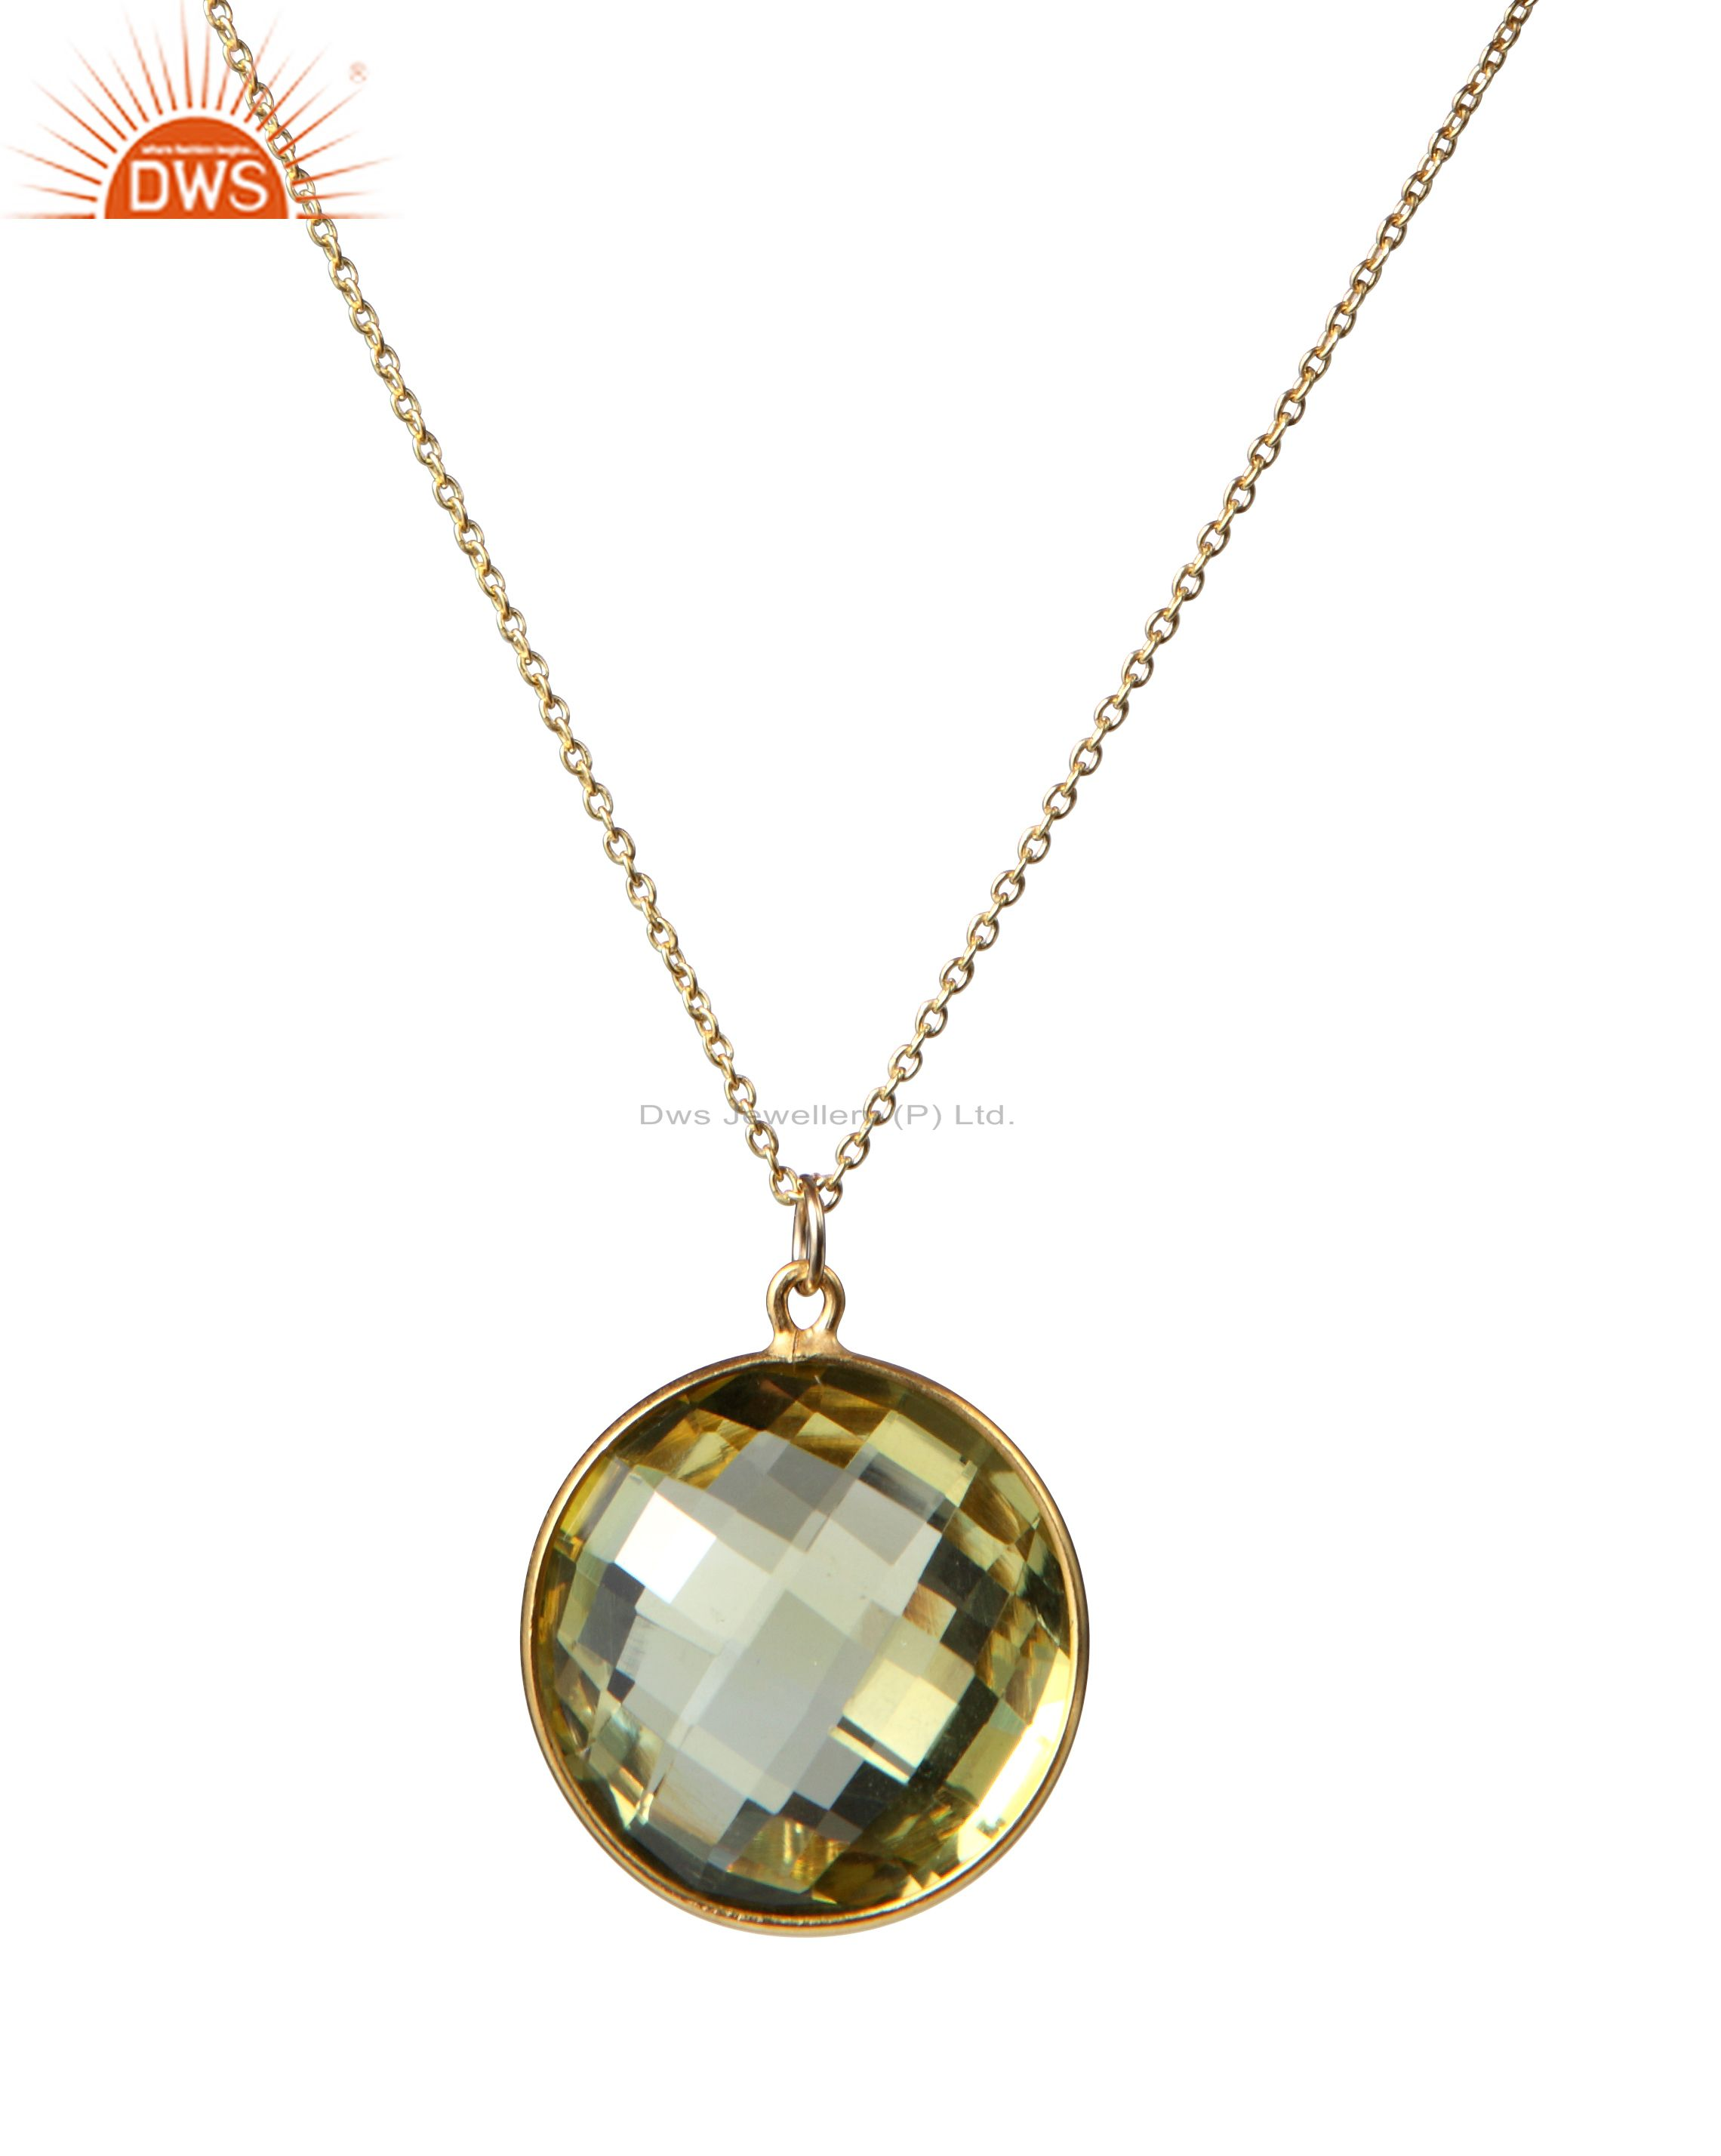 18k yellow gold plated sterling silver lemon topaz bezel set pendant with chain